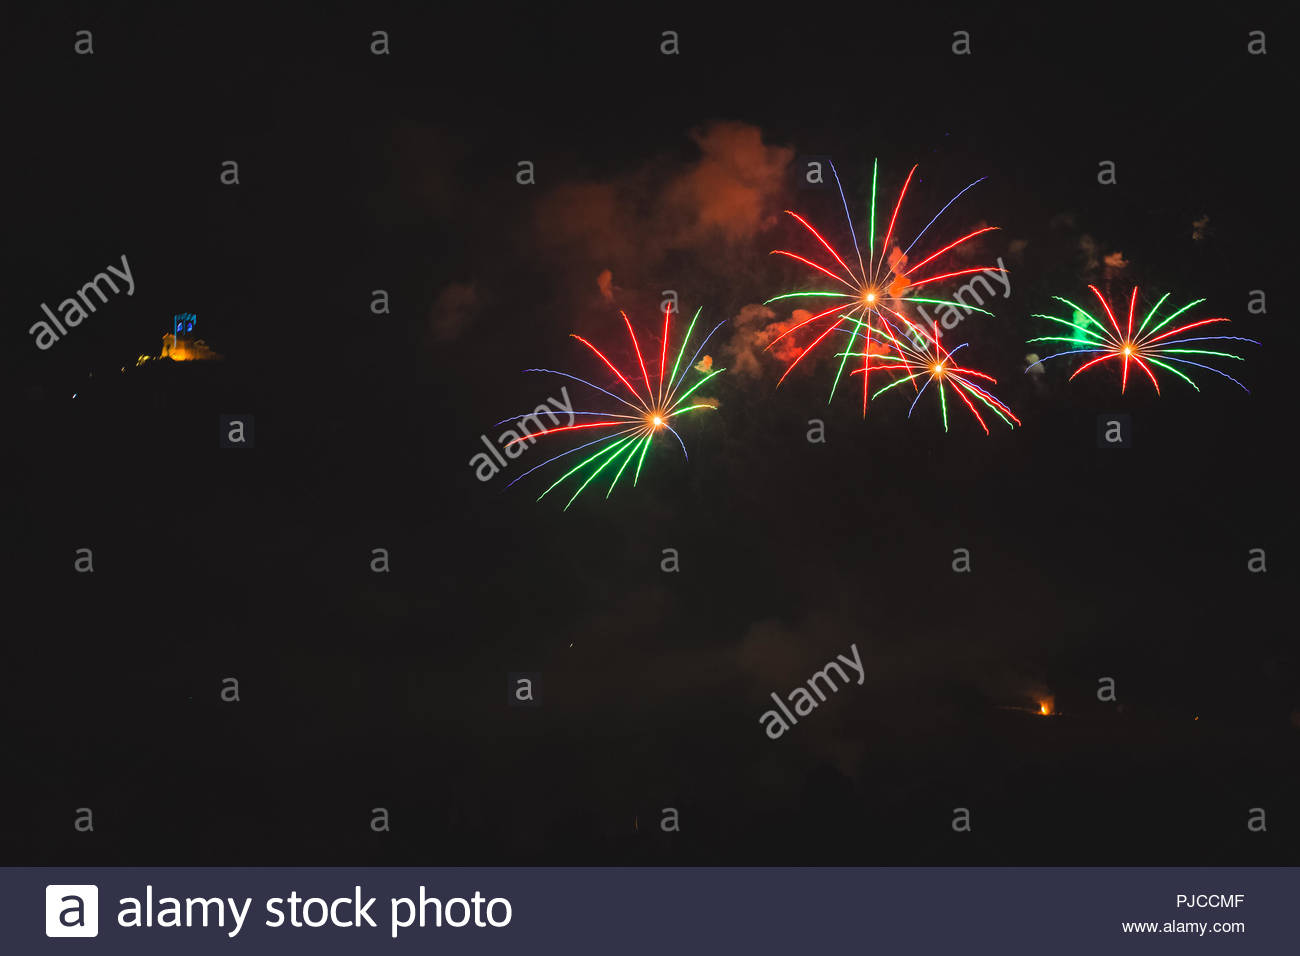 Colorful fireworks on the feast of the patron saint of the city 1300x956